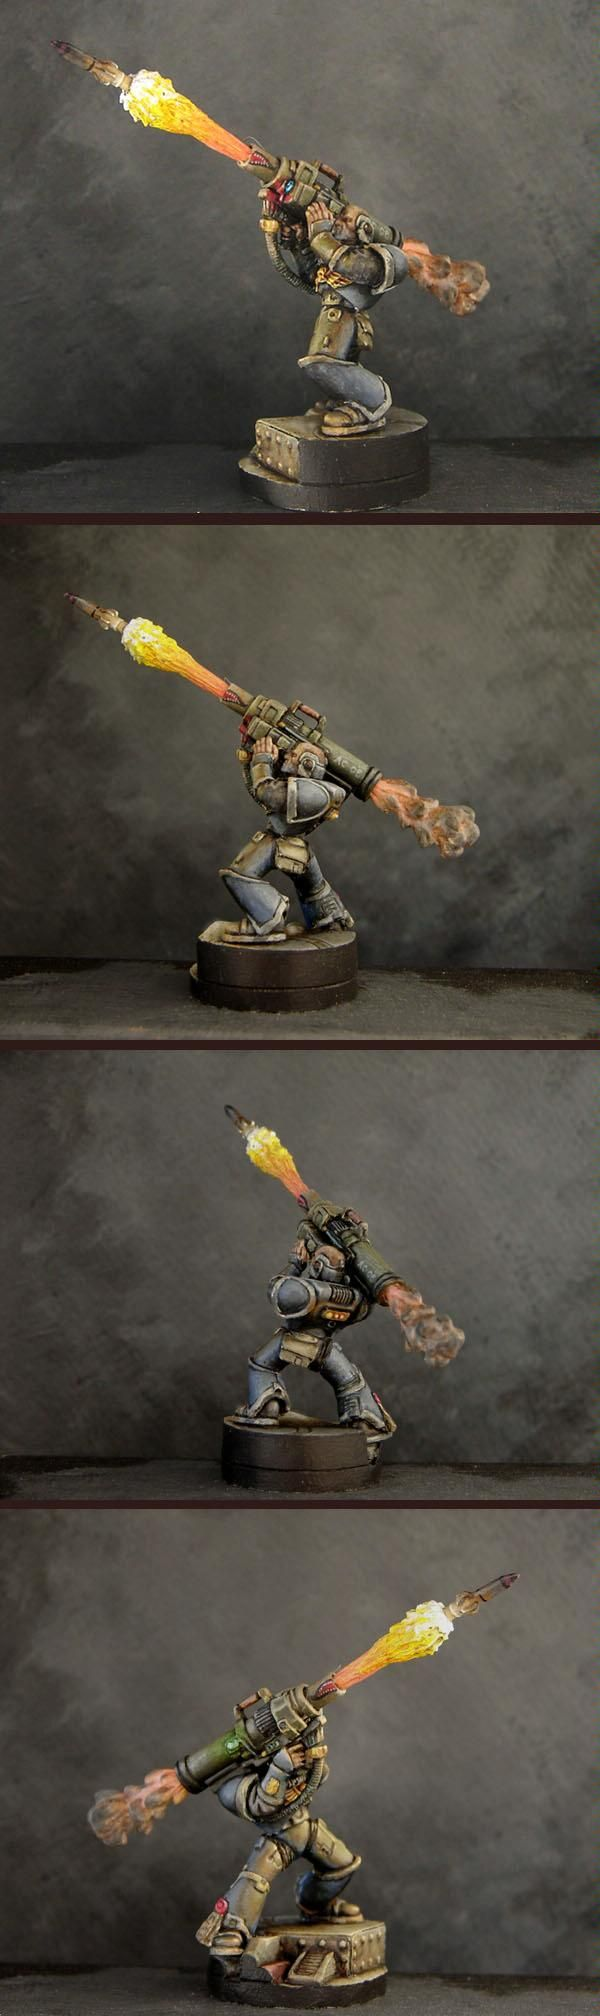 Warhammer 40k, Space Marine with Rocket Launcher - Awesome rocket plume available from Armorcast!